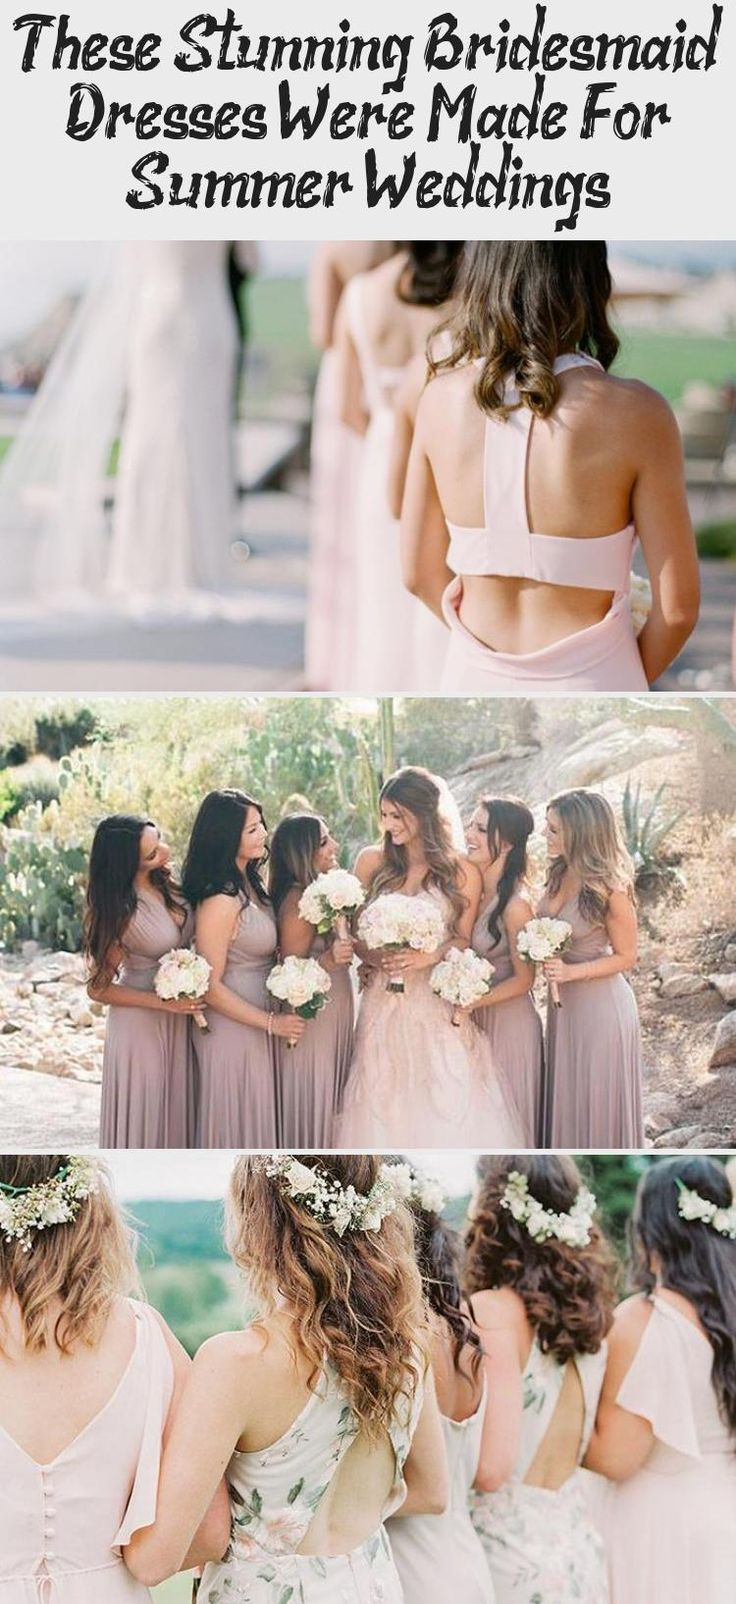 The Most Stunning Summer Bridesmaid Dresses Of 2018 #BridesmaidDressesMidi #BridesmaidDressesSummer #BridesmaidDressesWinter #BridesmaidDressesCountry #BridesmaidDressesMauve